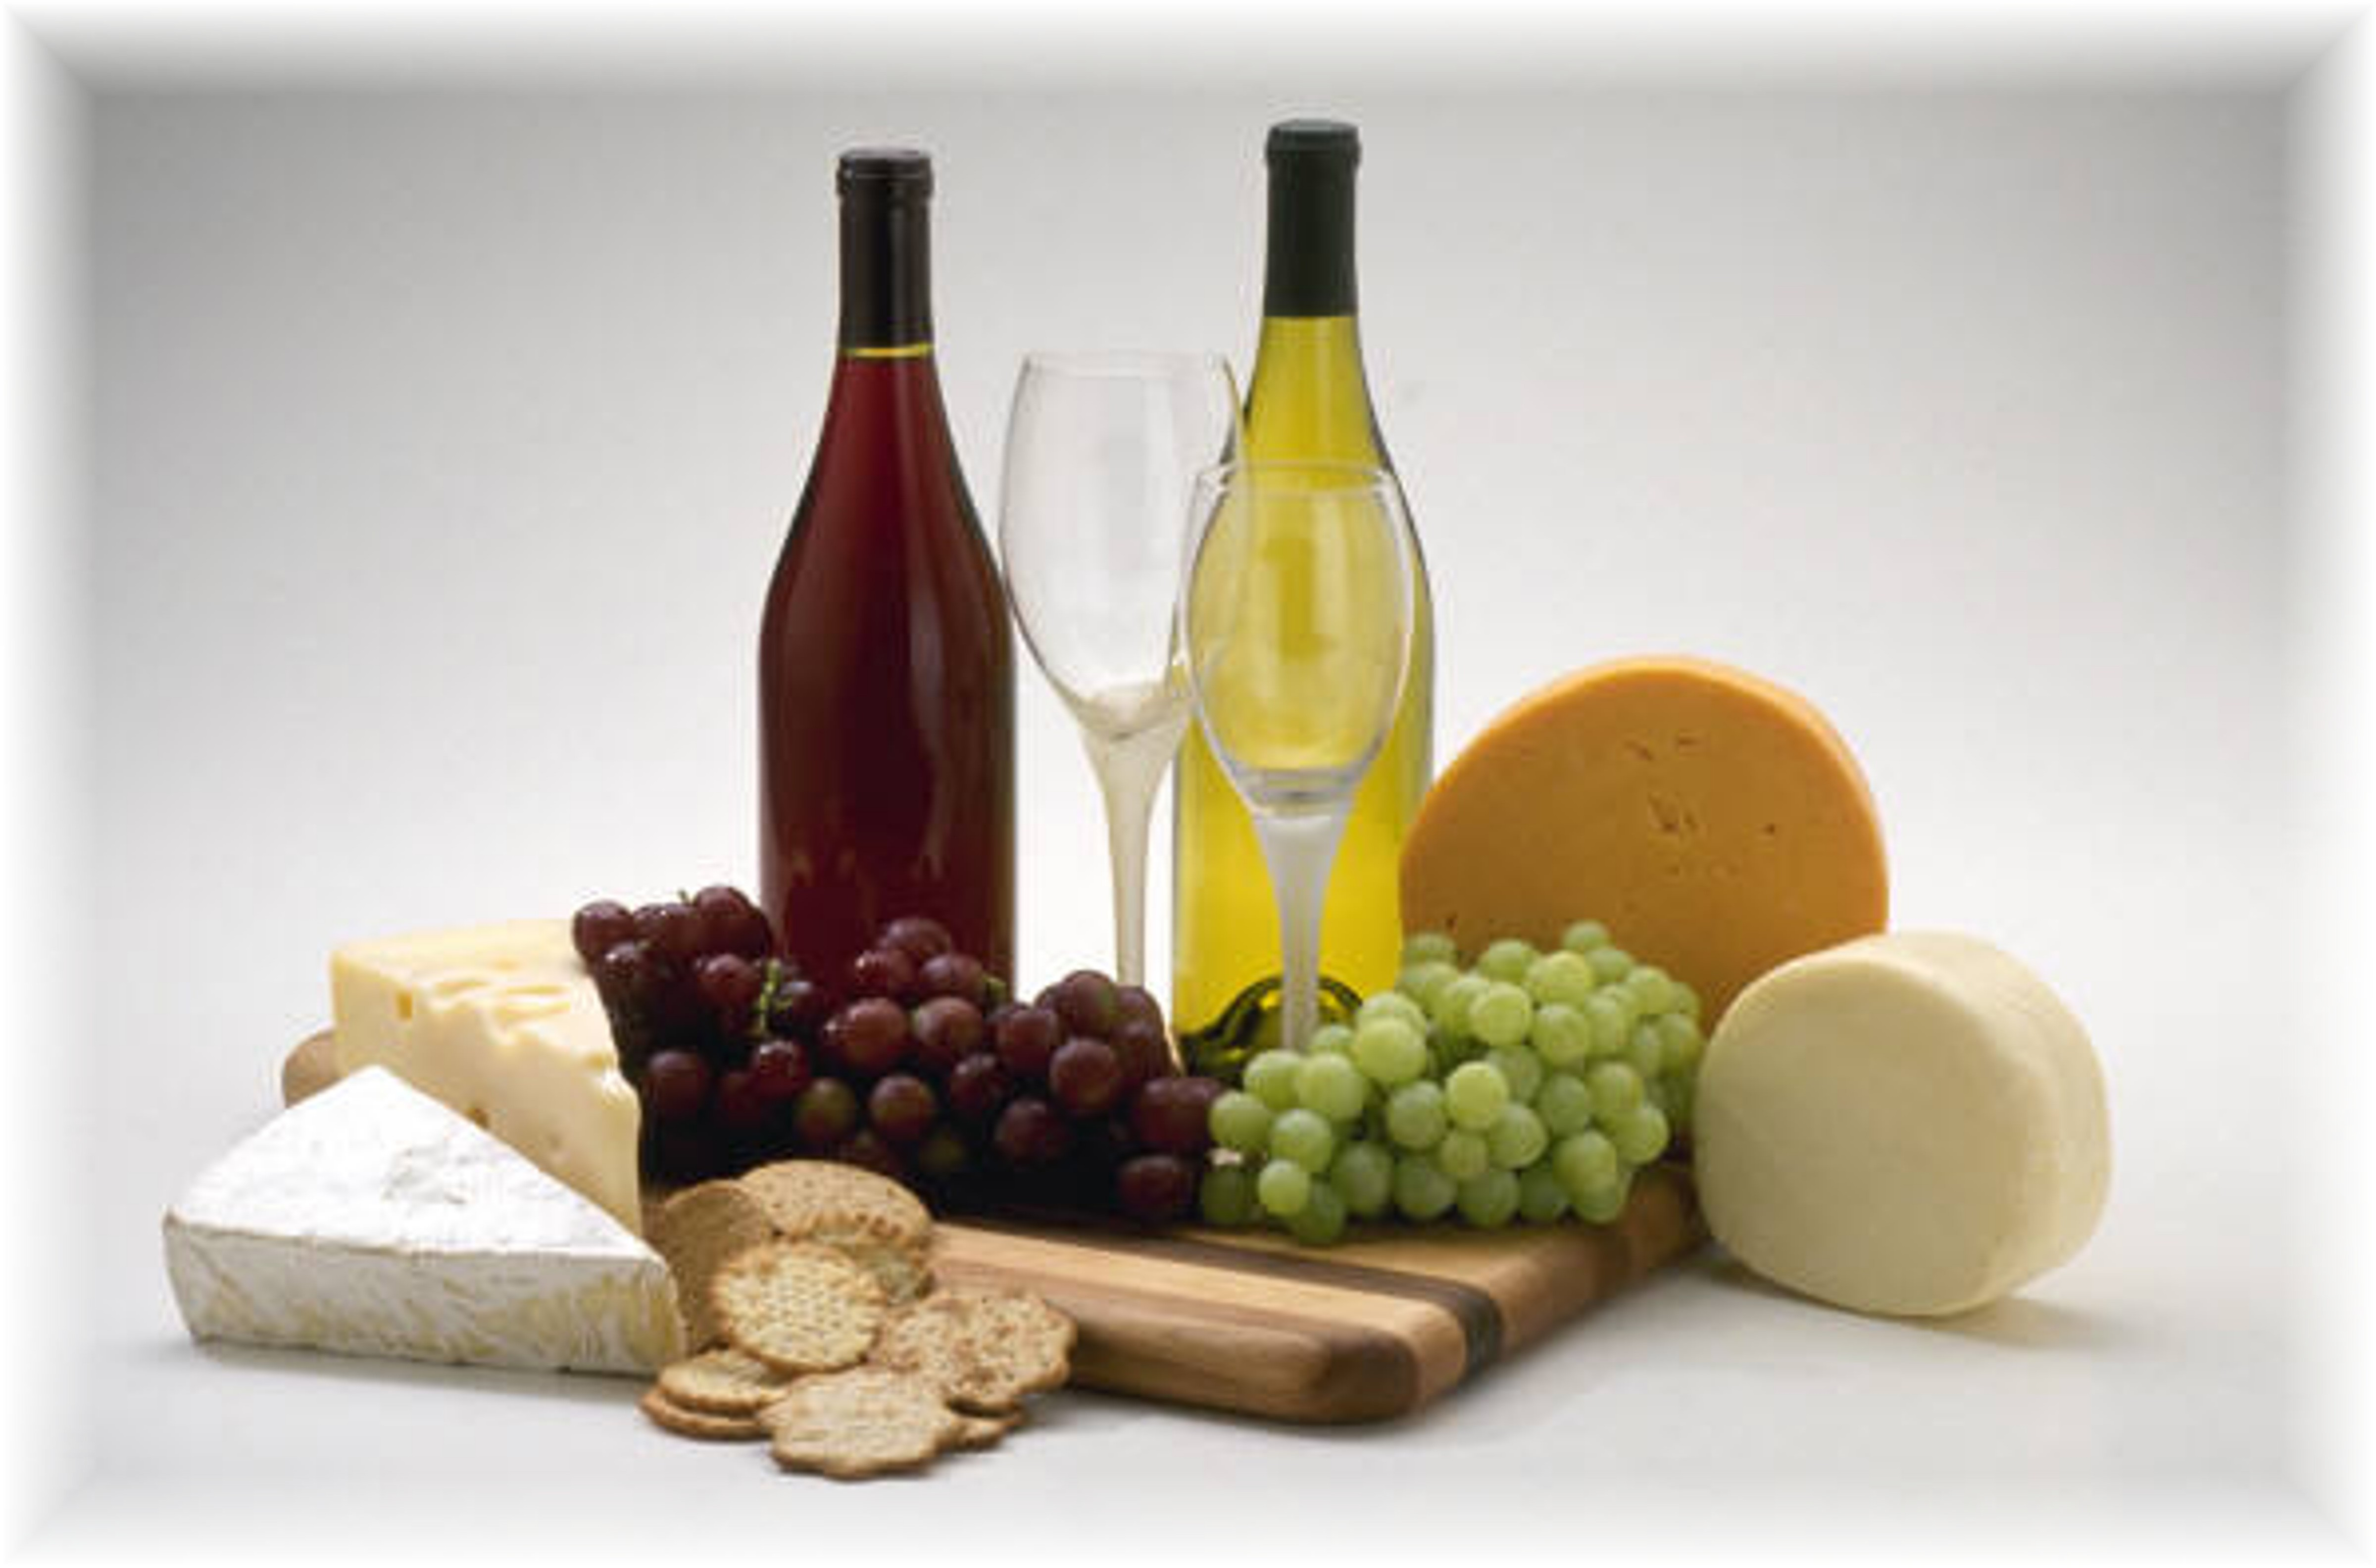 Buy Wines Direct From An Online Wine Retailer